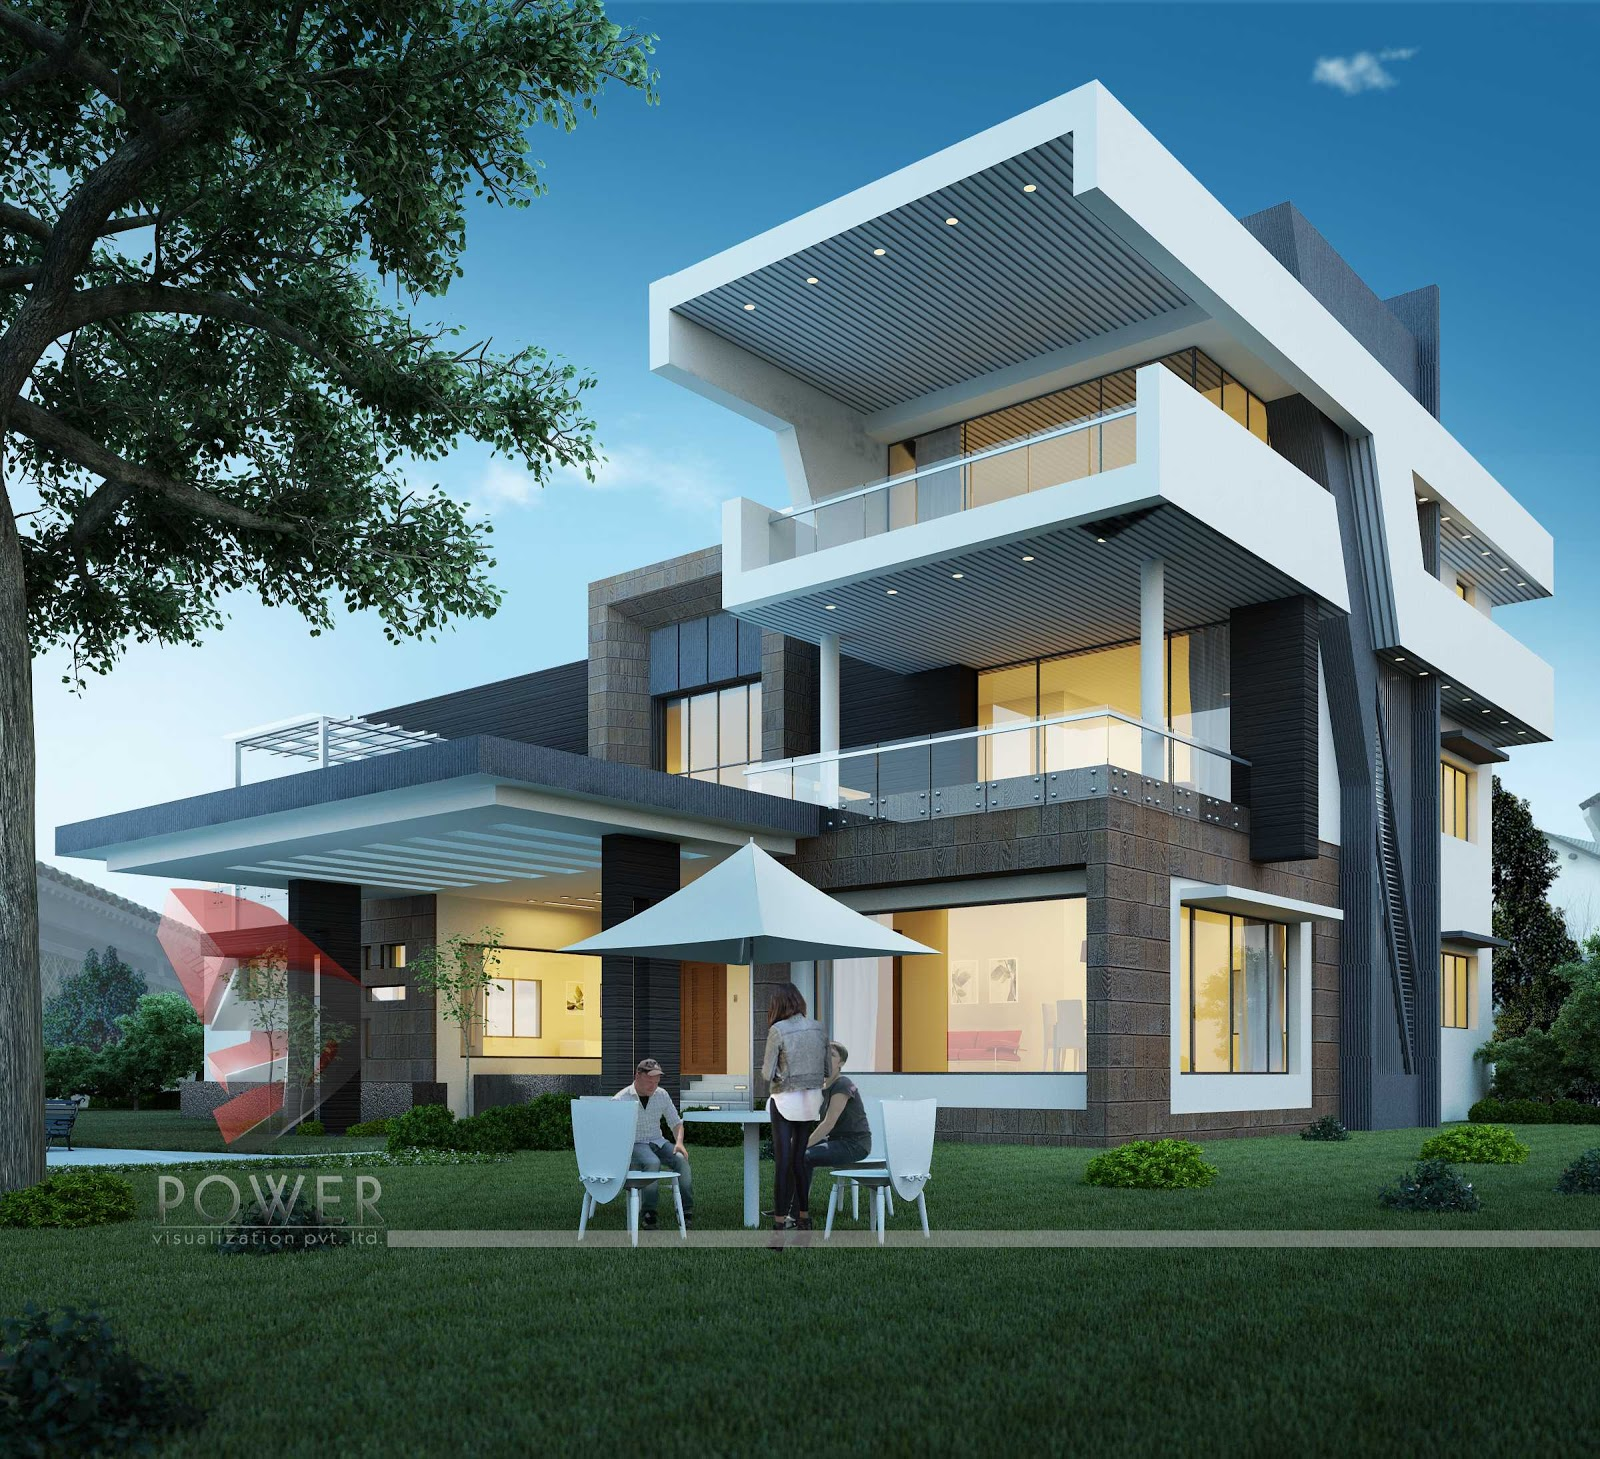 Ultra modern home designs home designs october 2012 Modern home ideas